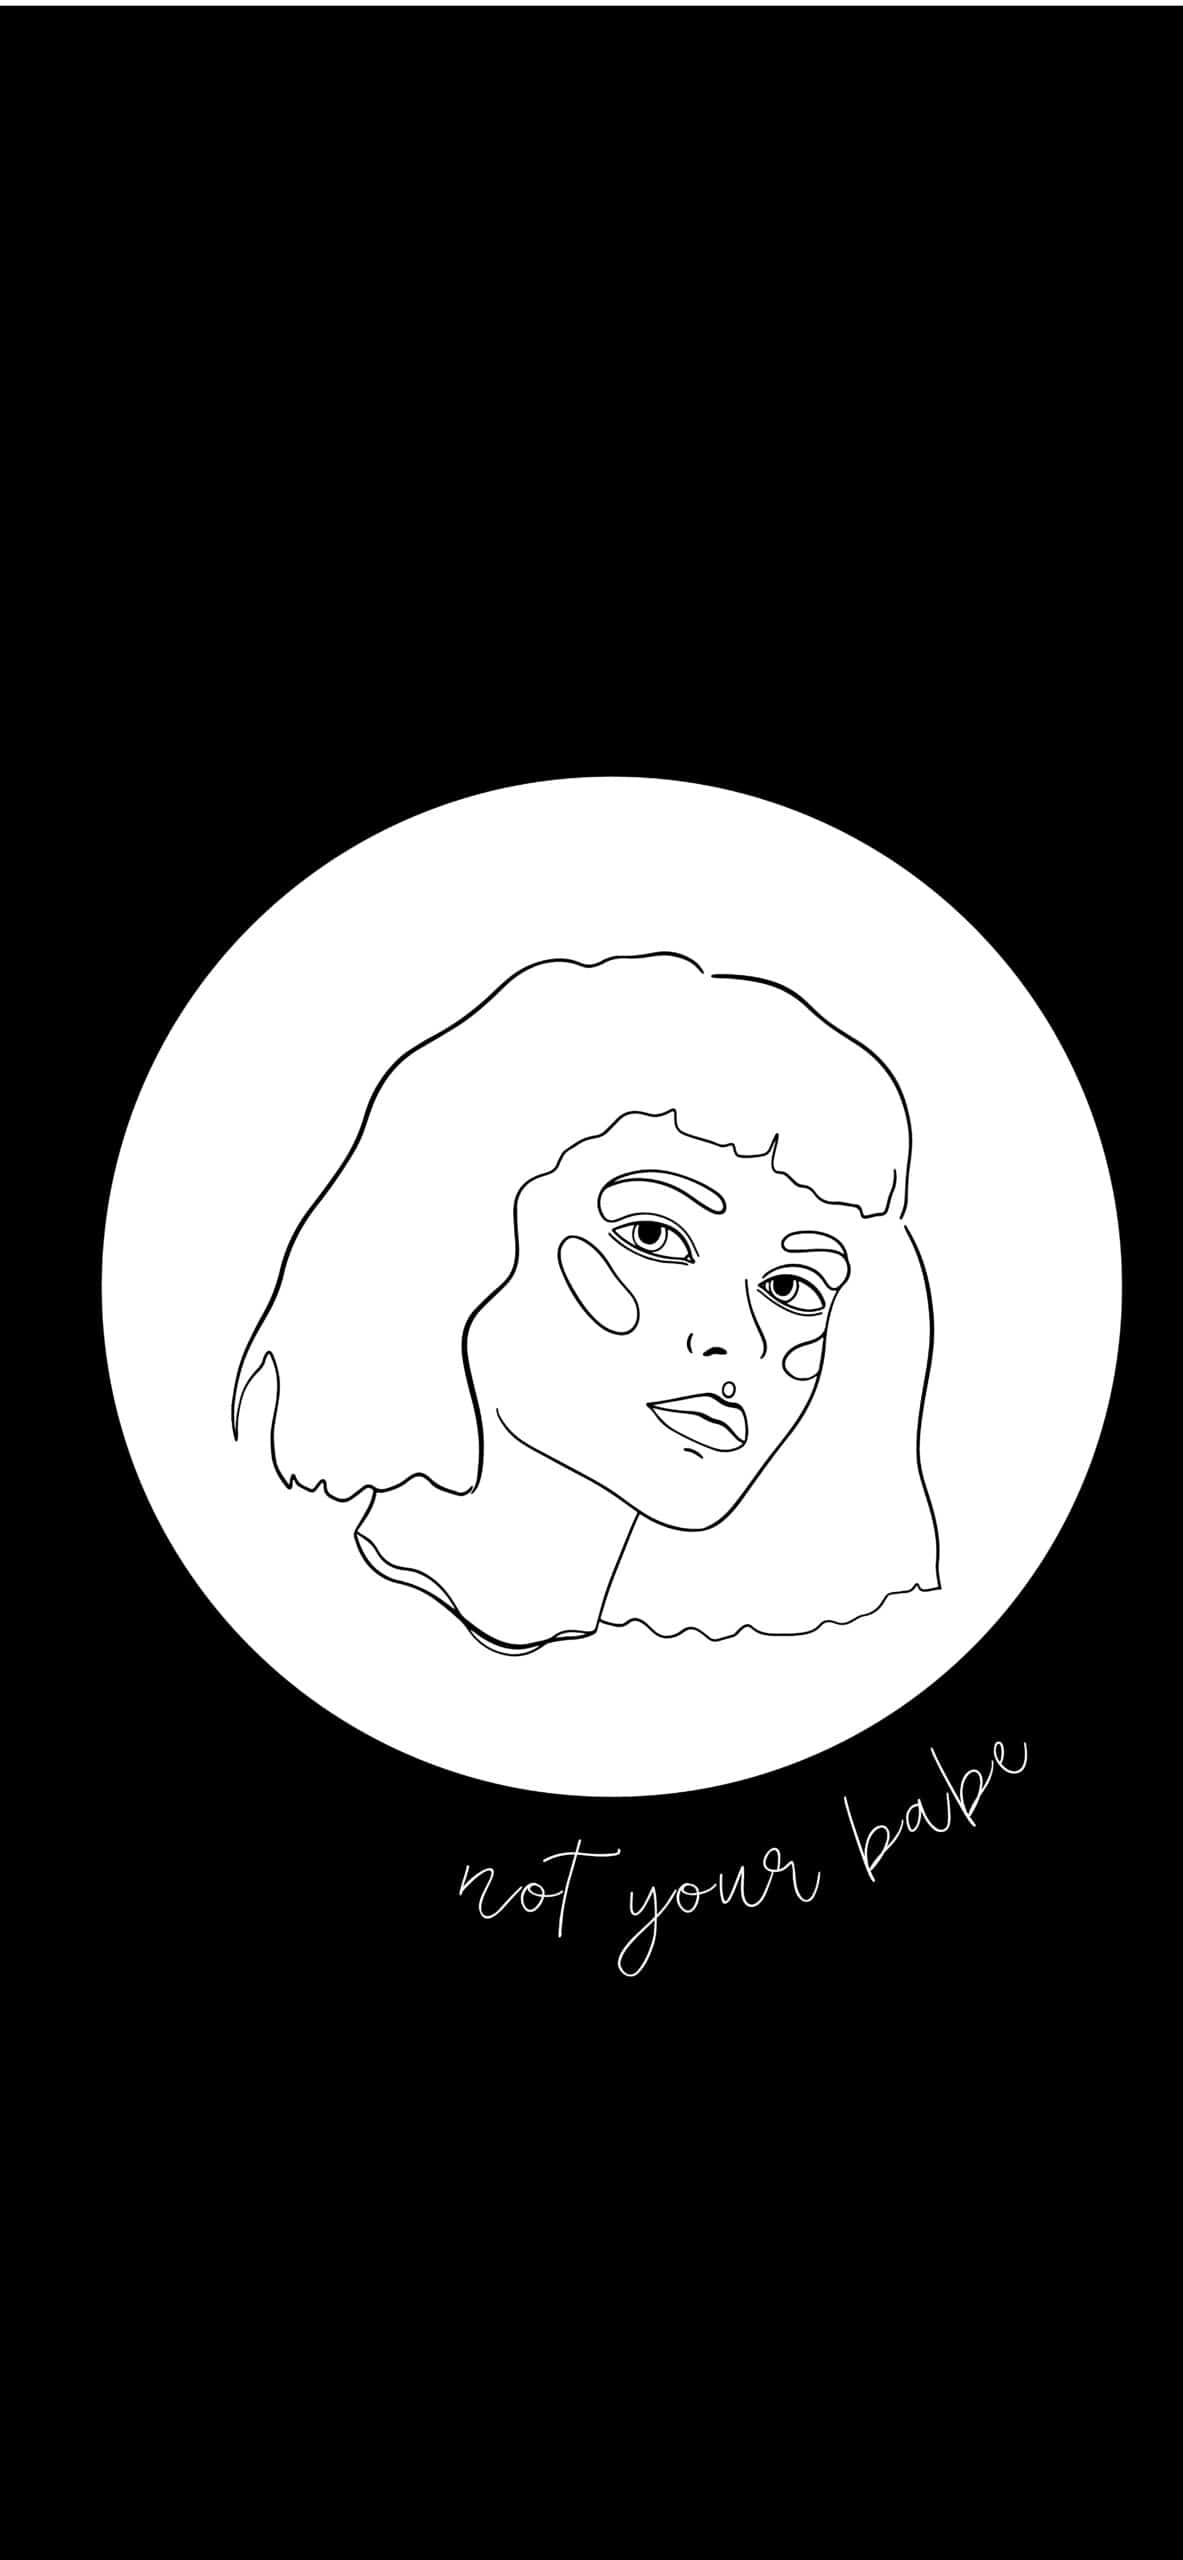 12 Stunning Line Art Girl Iphone Wallpaper And Wall Art You Need To Get